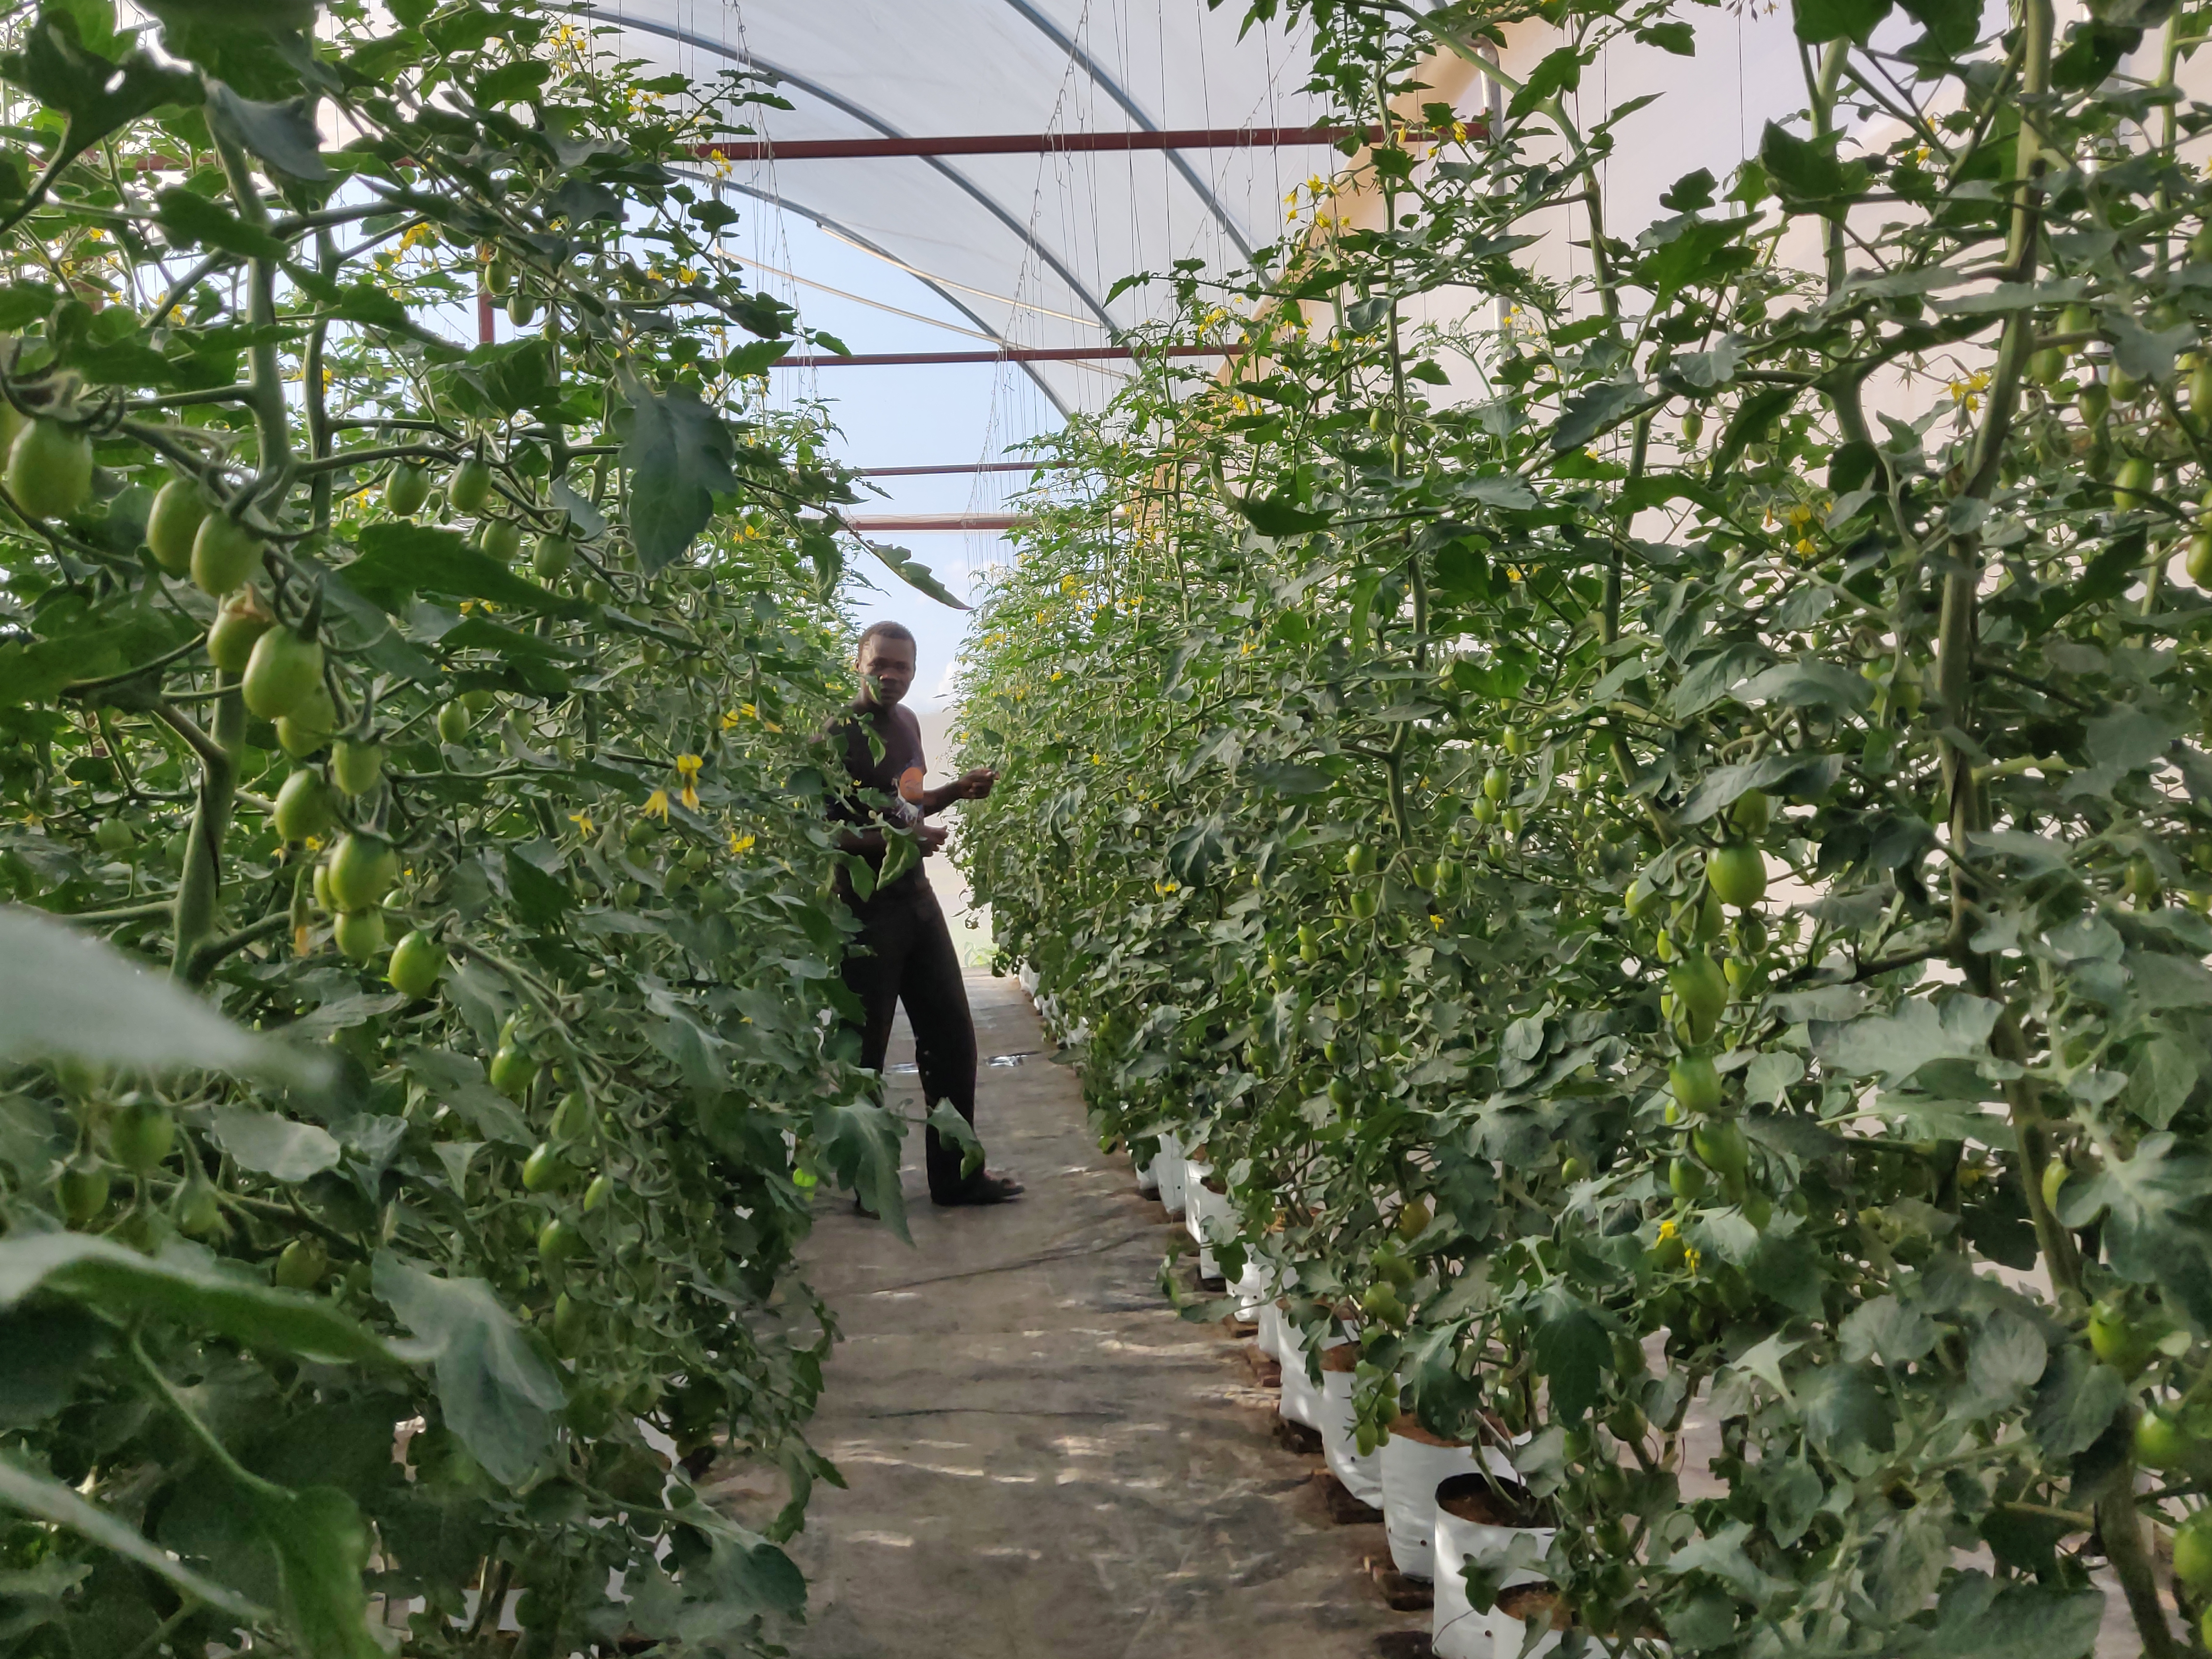 Grower tends to plants in a greenhouse